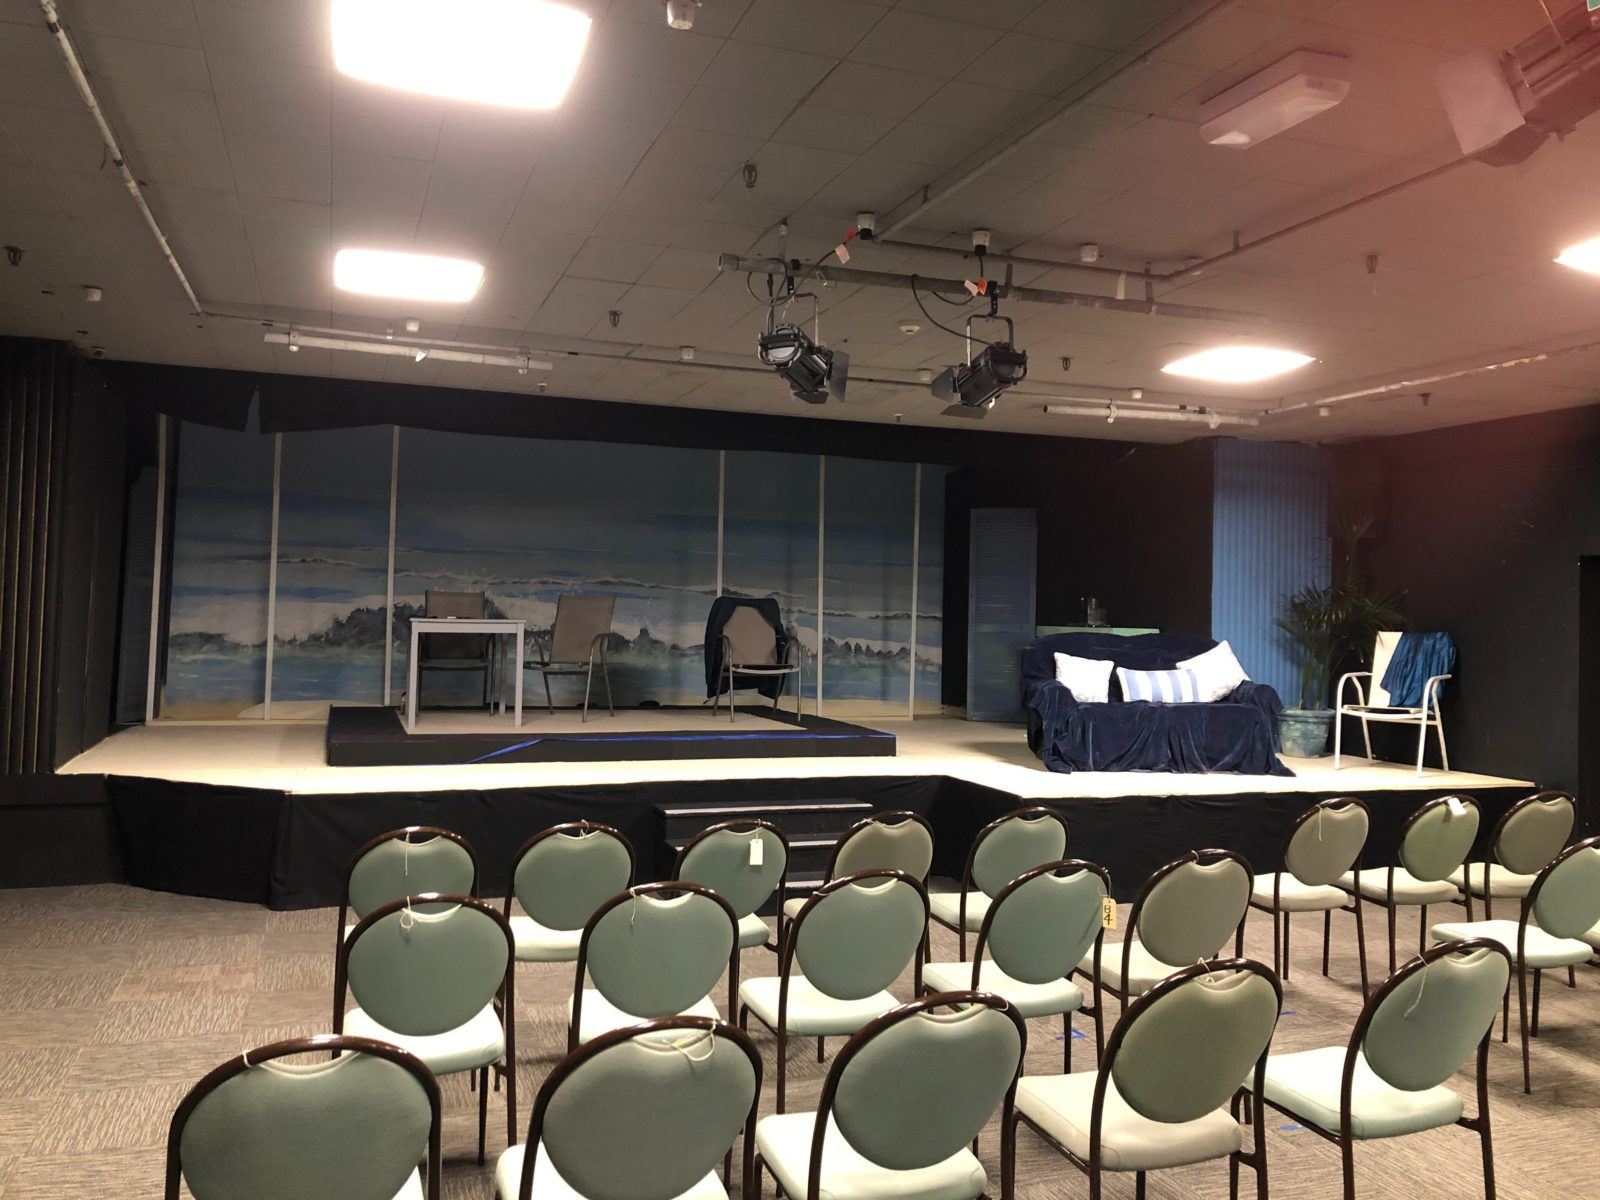 Inside Basement Theatre with set for current production in place.